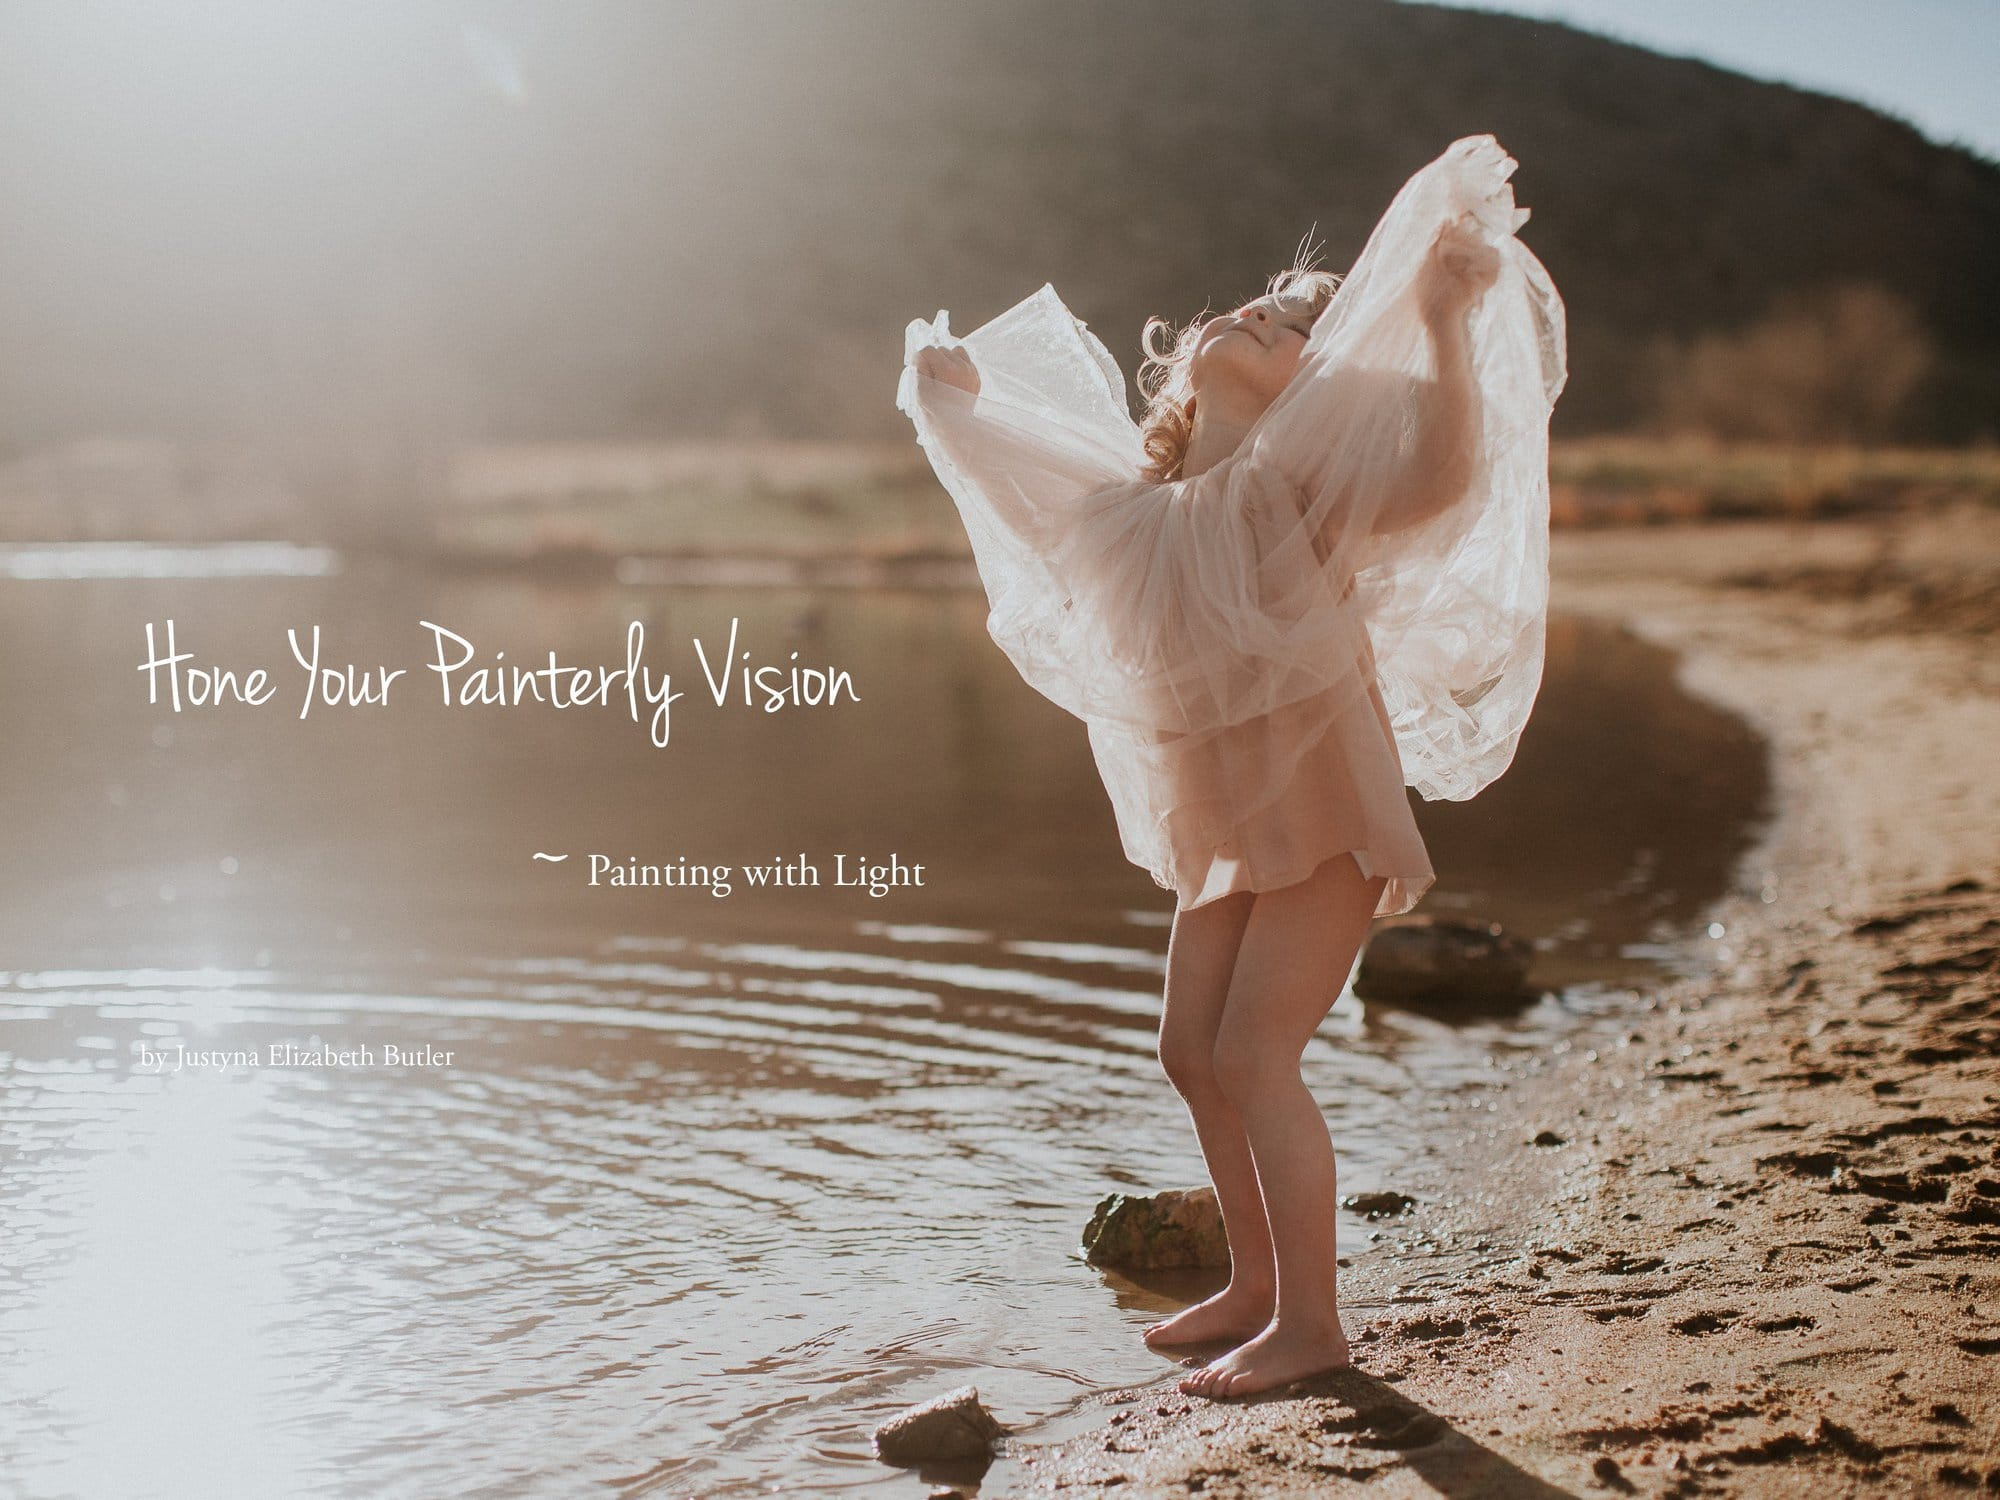 HONE YOUR PAINTERLY VISION ONLINE WORKSHOP ADVENTURES|ROCKY MOUNTAINADVENTURE|COLORADO MOUNTAIN ADVENTURE PHOTOGRAPHER|JUSTYNA E BUTLER PHOTOGRAPHY I ONLINE BREAKOUTS I BEYOND THE WANDERLUST WORKSHOPS